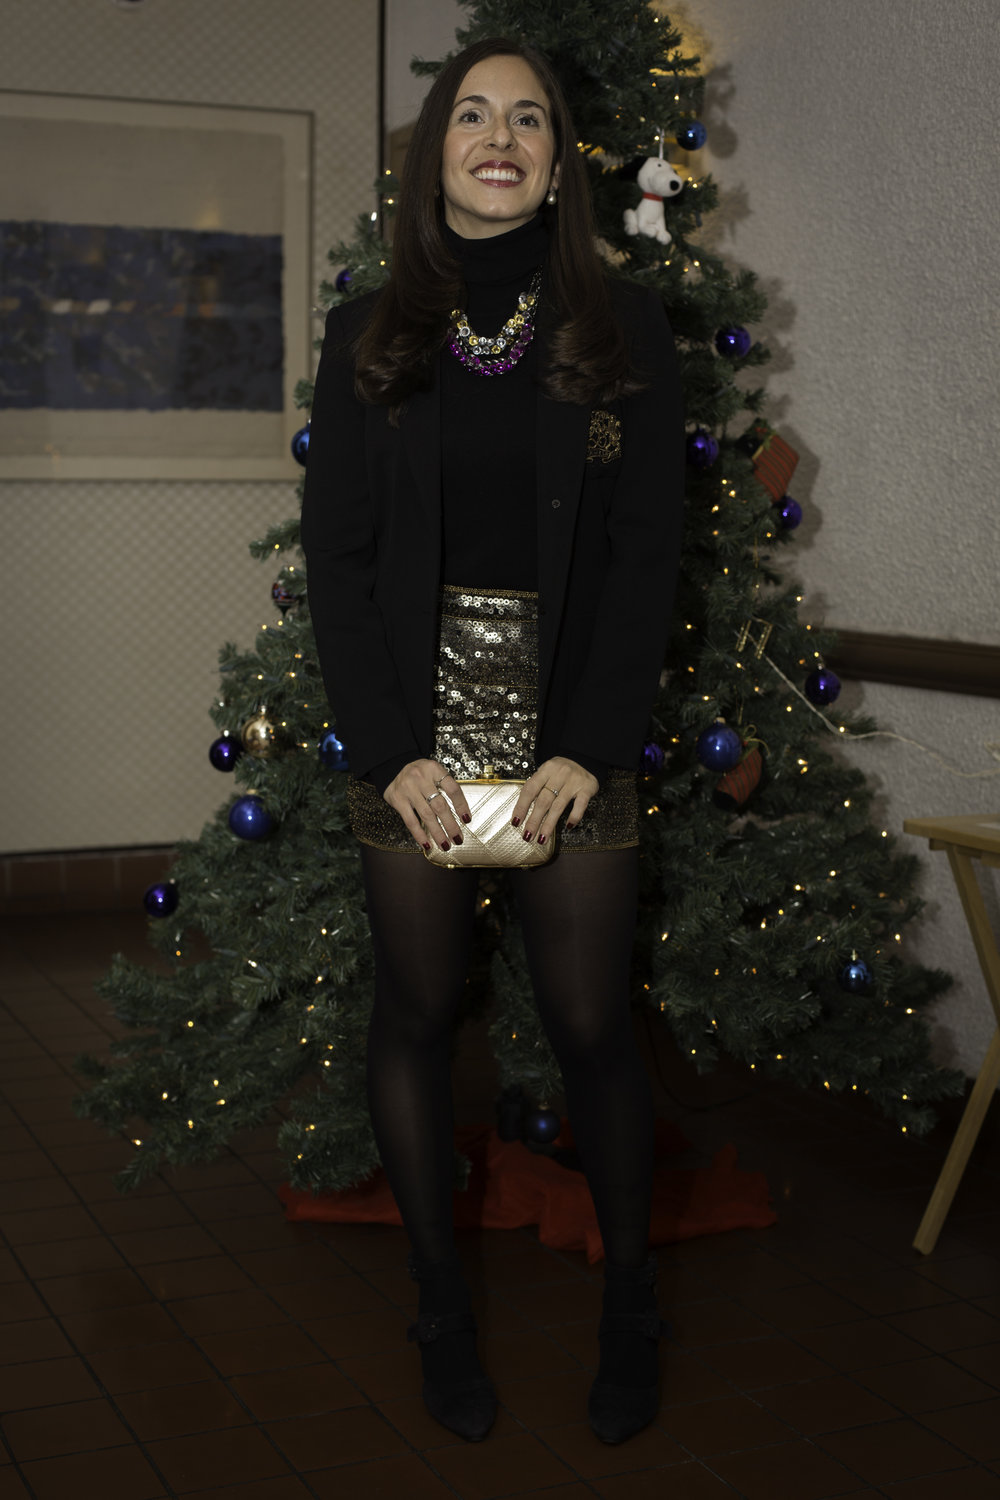 Standing by the tree at a holiday party wearing my  Ralph Lauren  black with gold crest blazer, a  Zara  black turtleneck, gold  Topshop  sequin mini skirt, black tights, and vintage black suede pumps. My gold clutch is a  Coach  python holiday clutch. Photography by  Francisco Graciano .